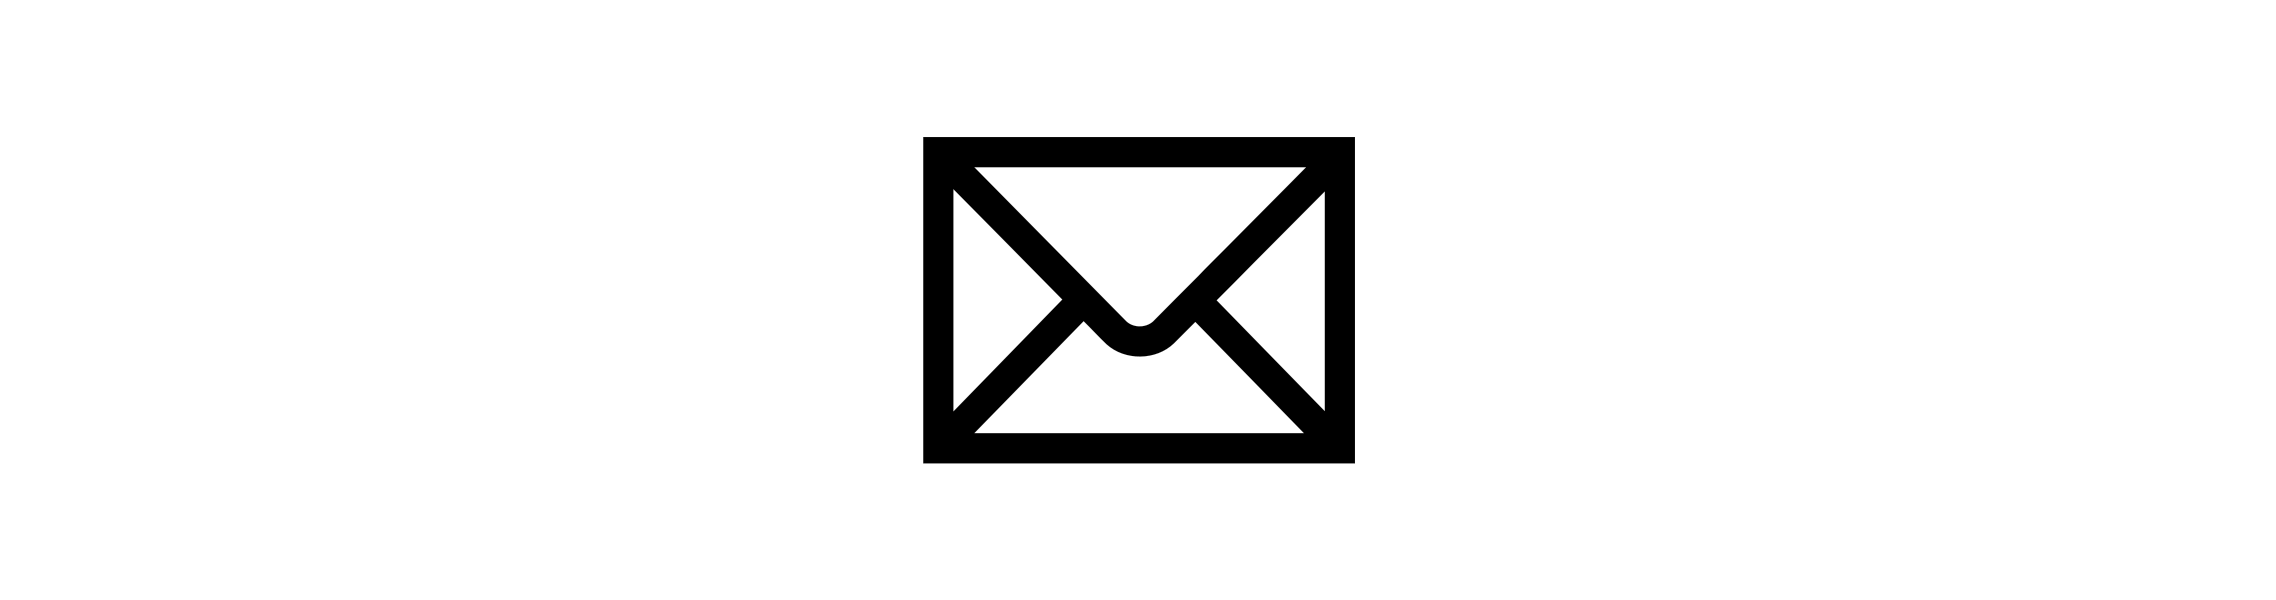 704px-aiga_mail-svg.png